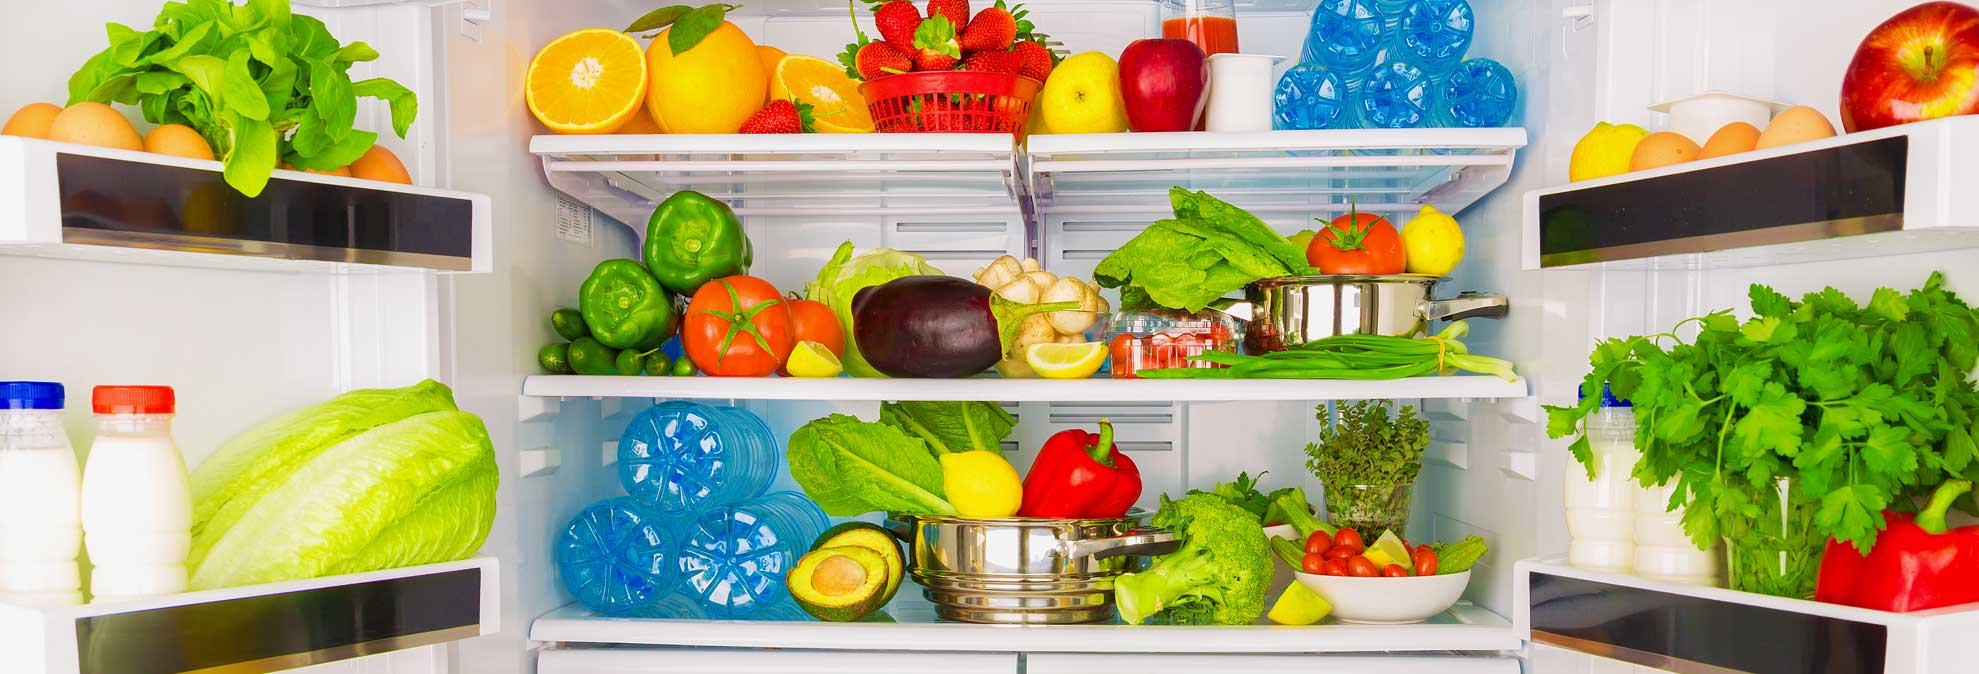 Kitchen Secrets That Promote Healthy Eating Habits